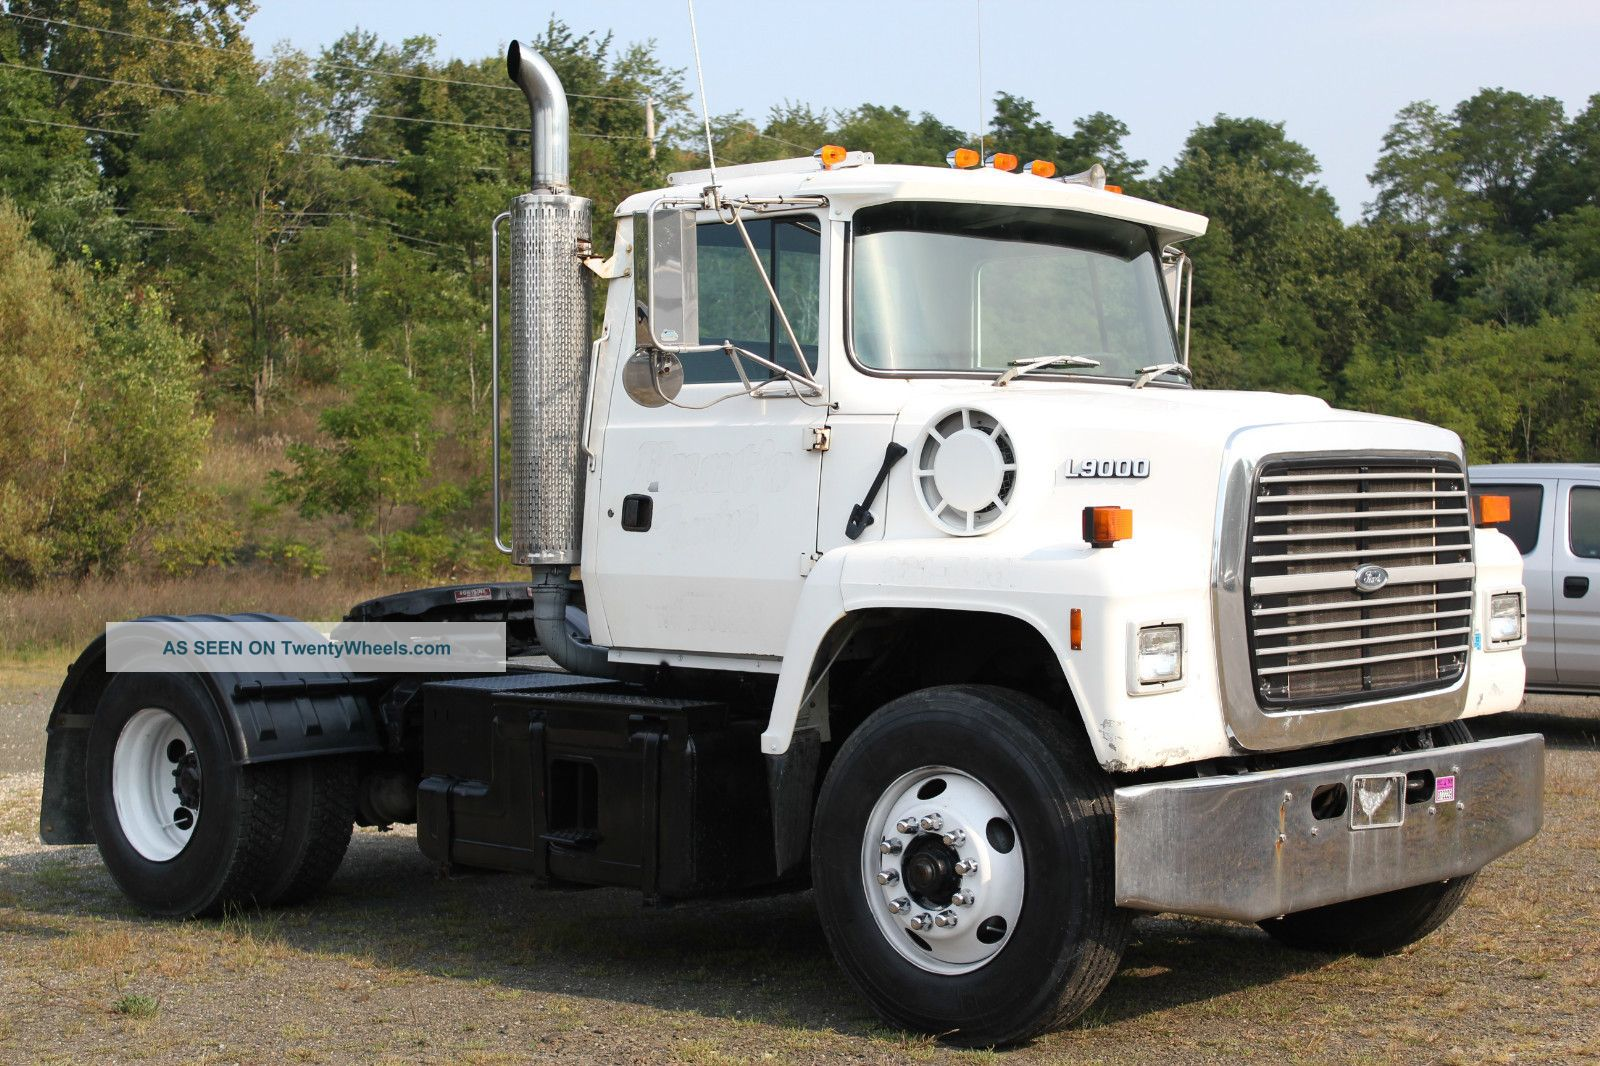 9959 2001 bobcat t200  pact track loader skidsteer as well 5271 1989 mack r model furthermore 20665 2005 freightliner sport chassis  crew cab further  additionally 30257 International loadstar. on semi truck dump trailers specs